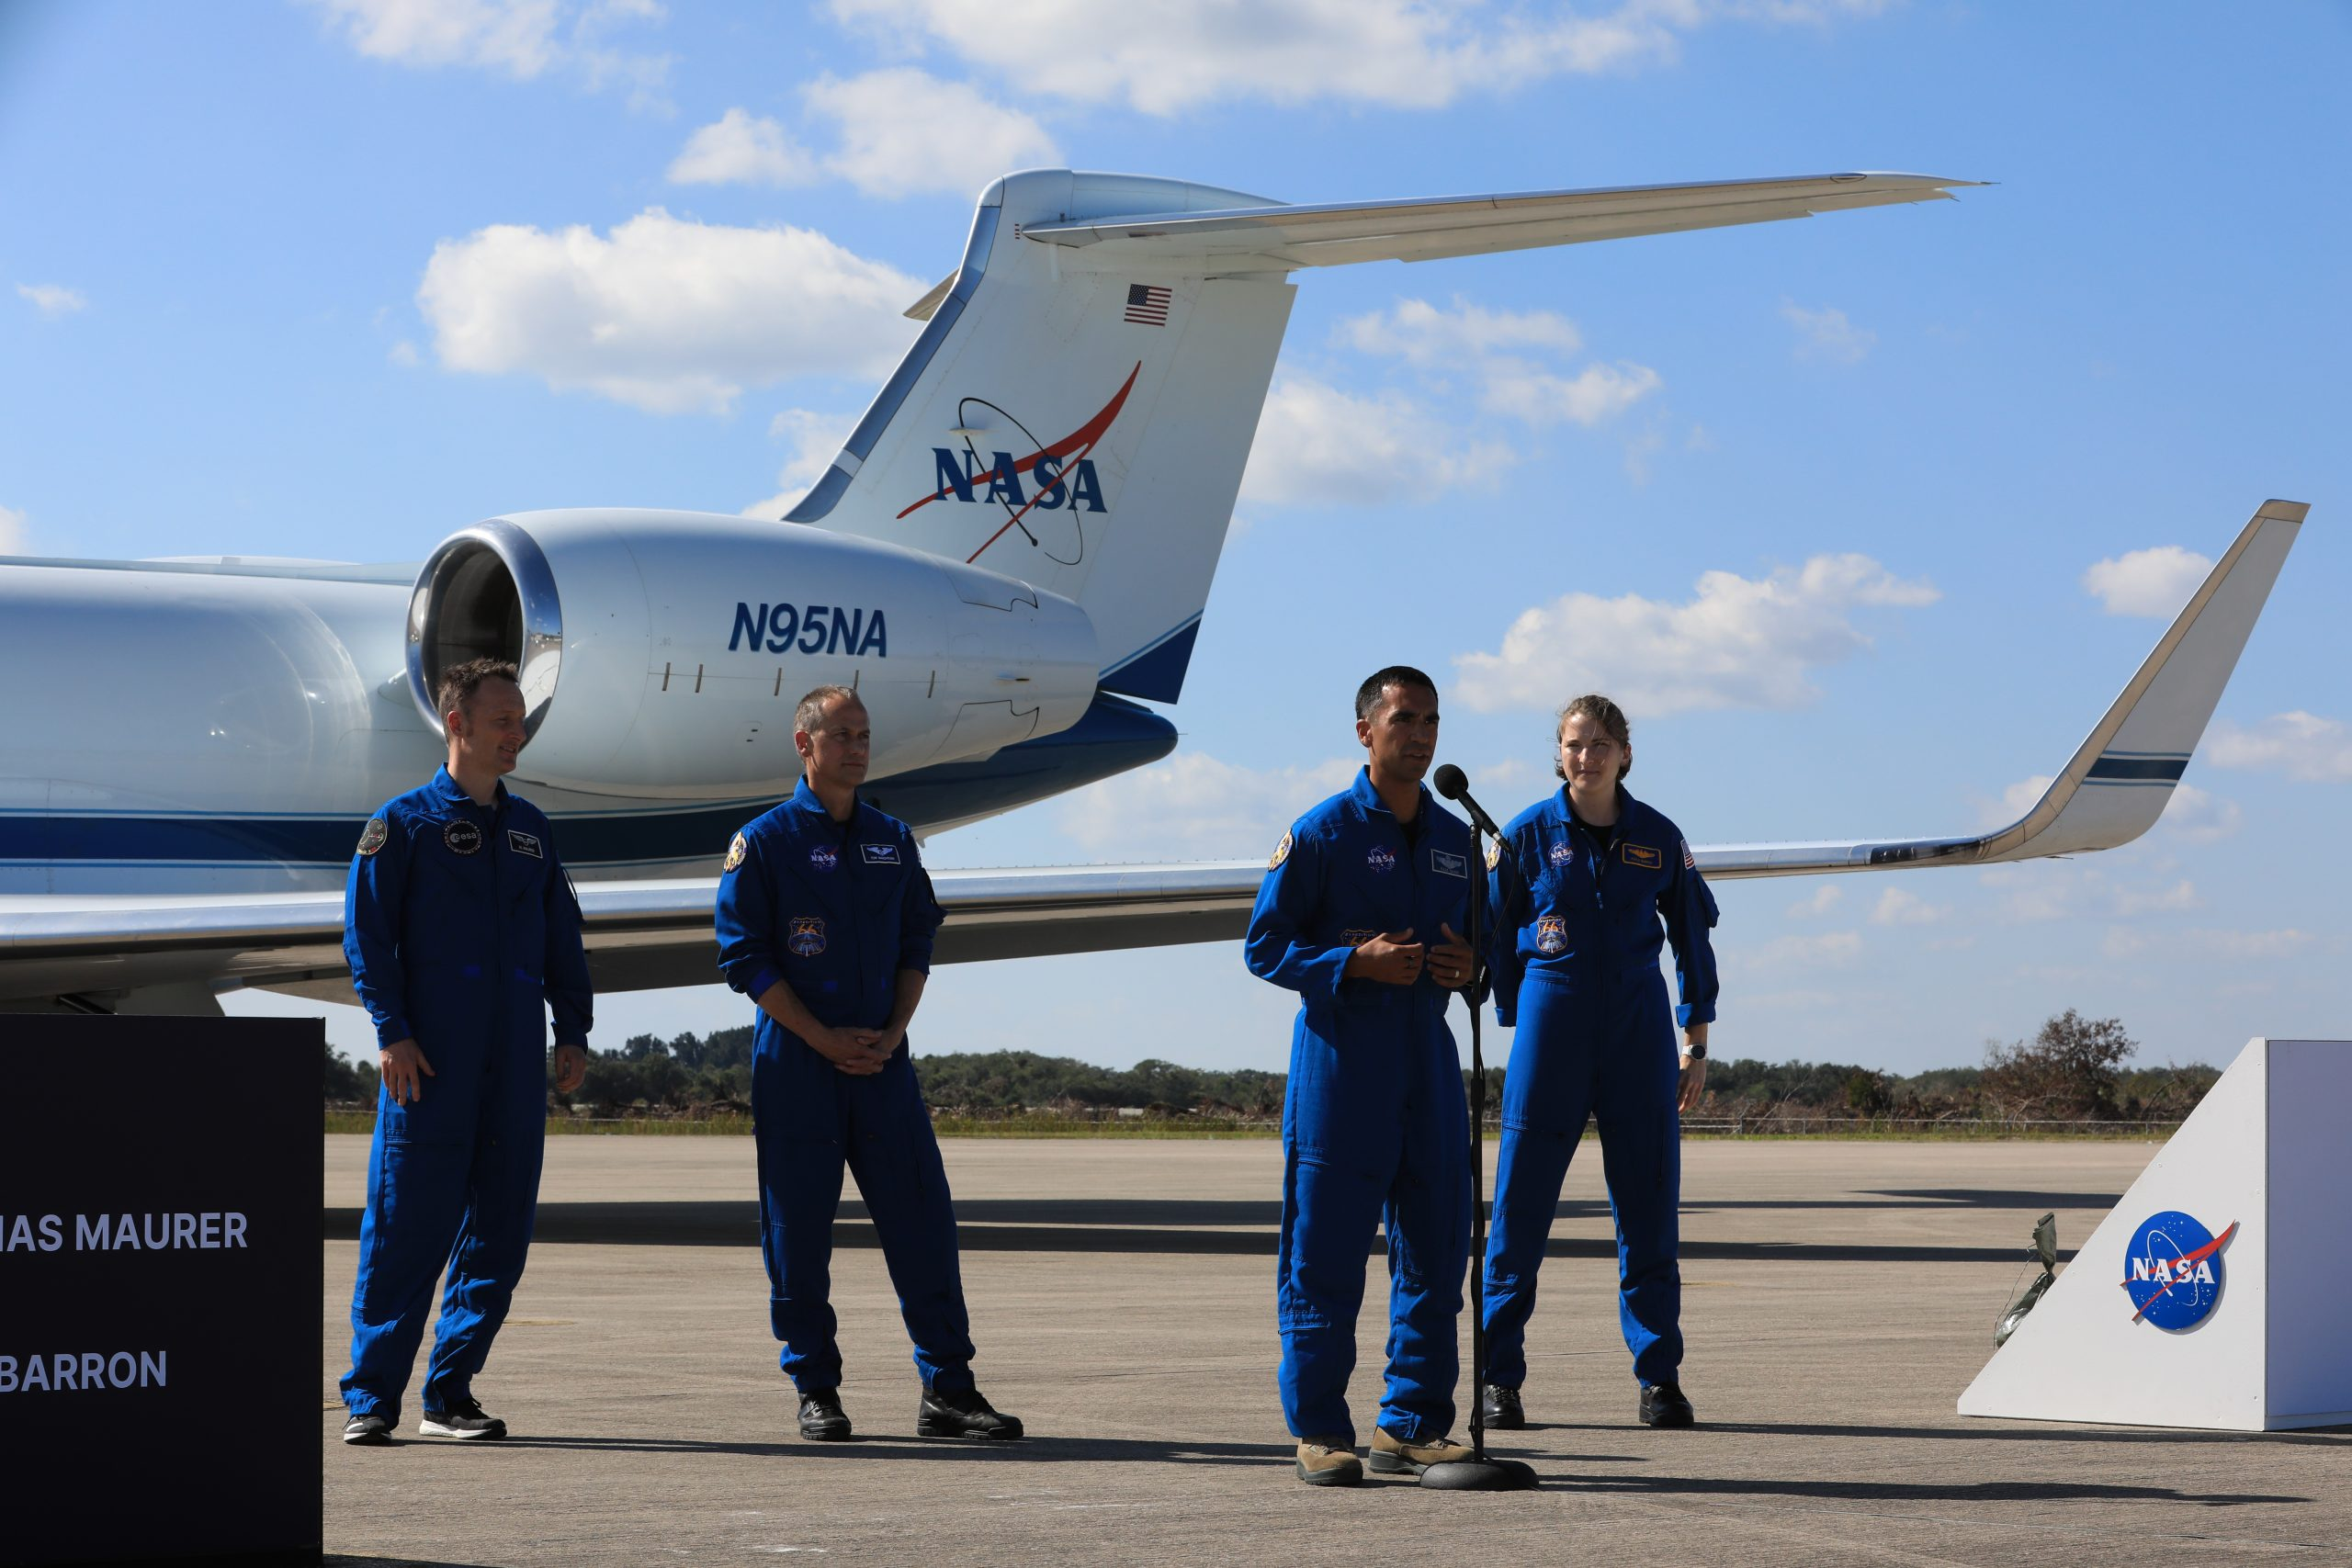 Crew-3 astronauts arrive in Florida ahead of SpaceX's planned Halloween launch